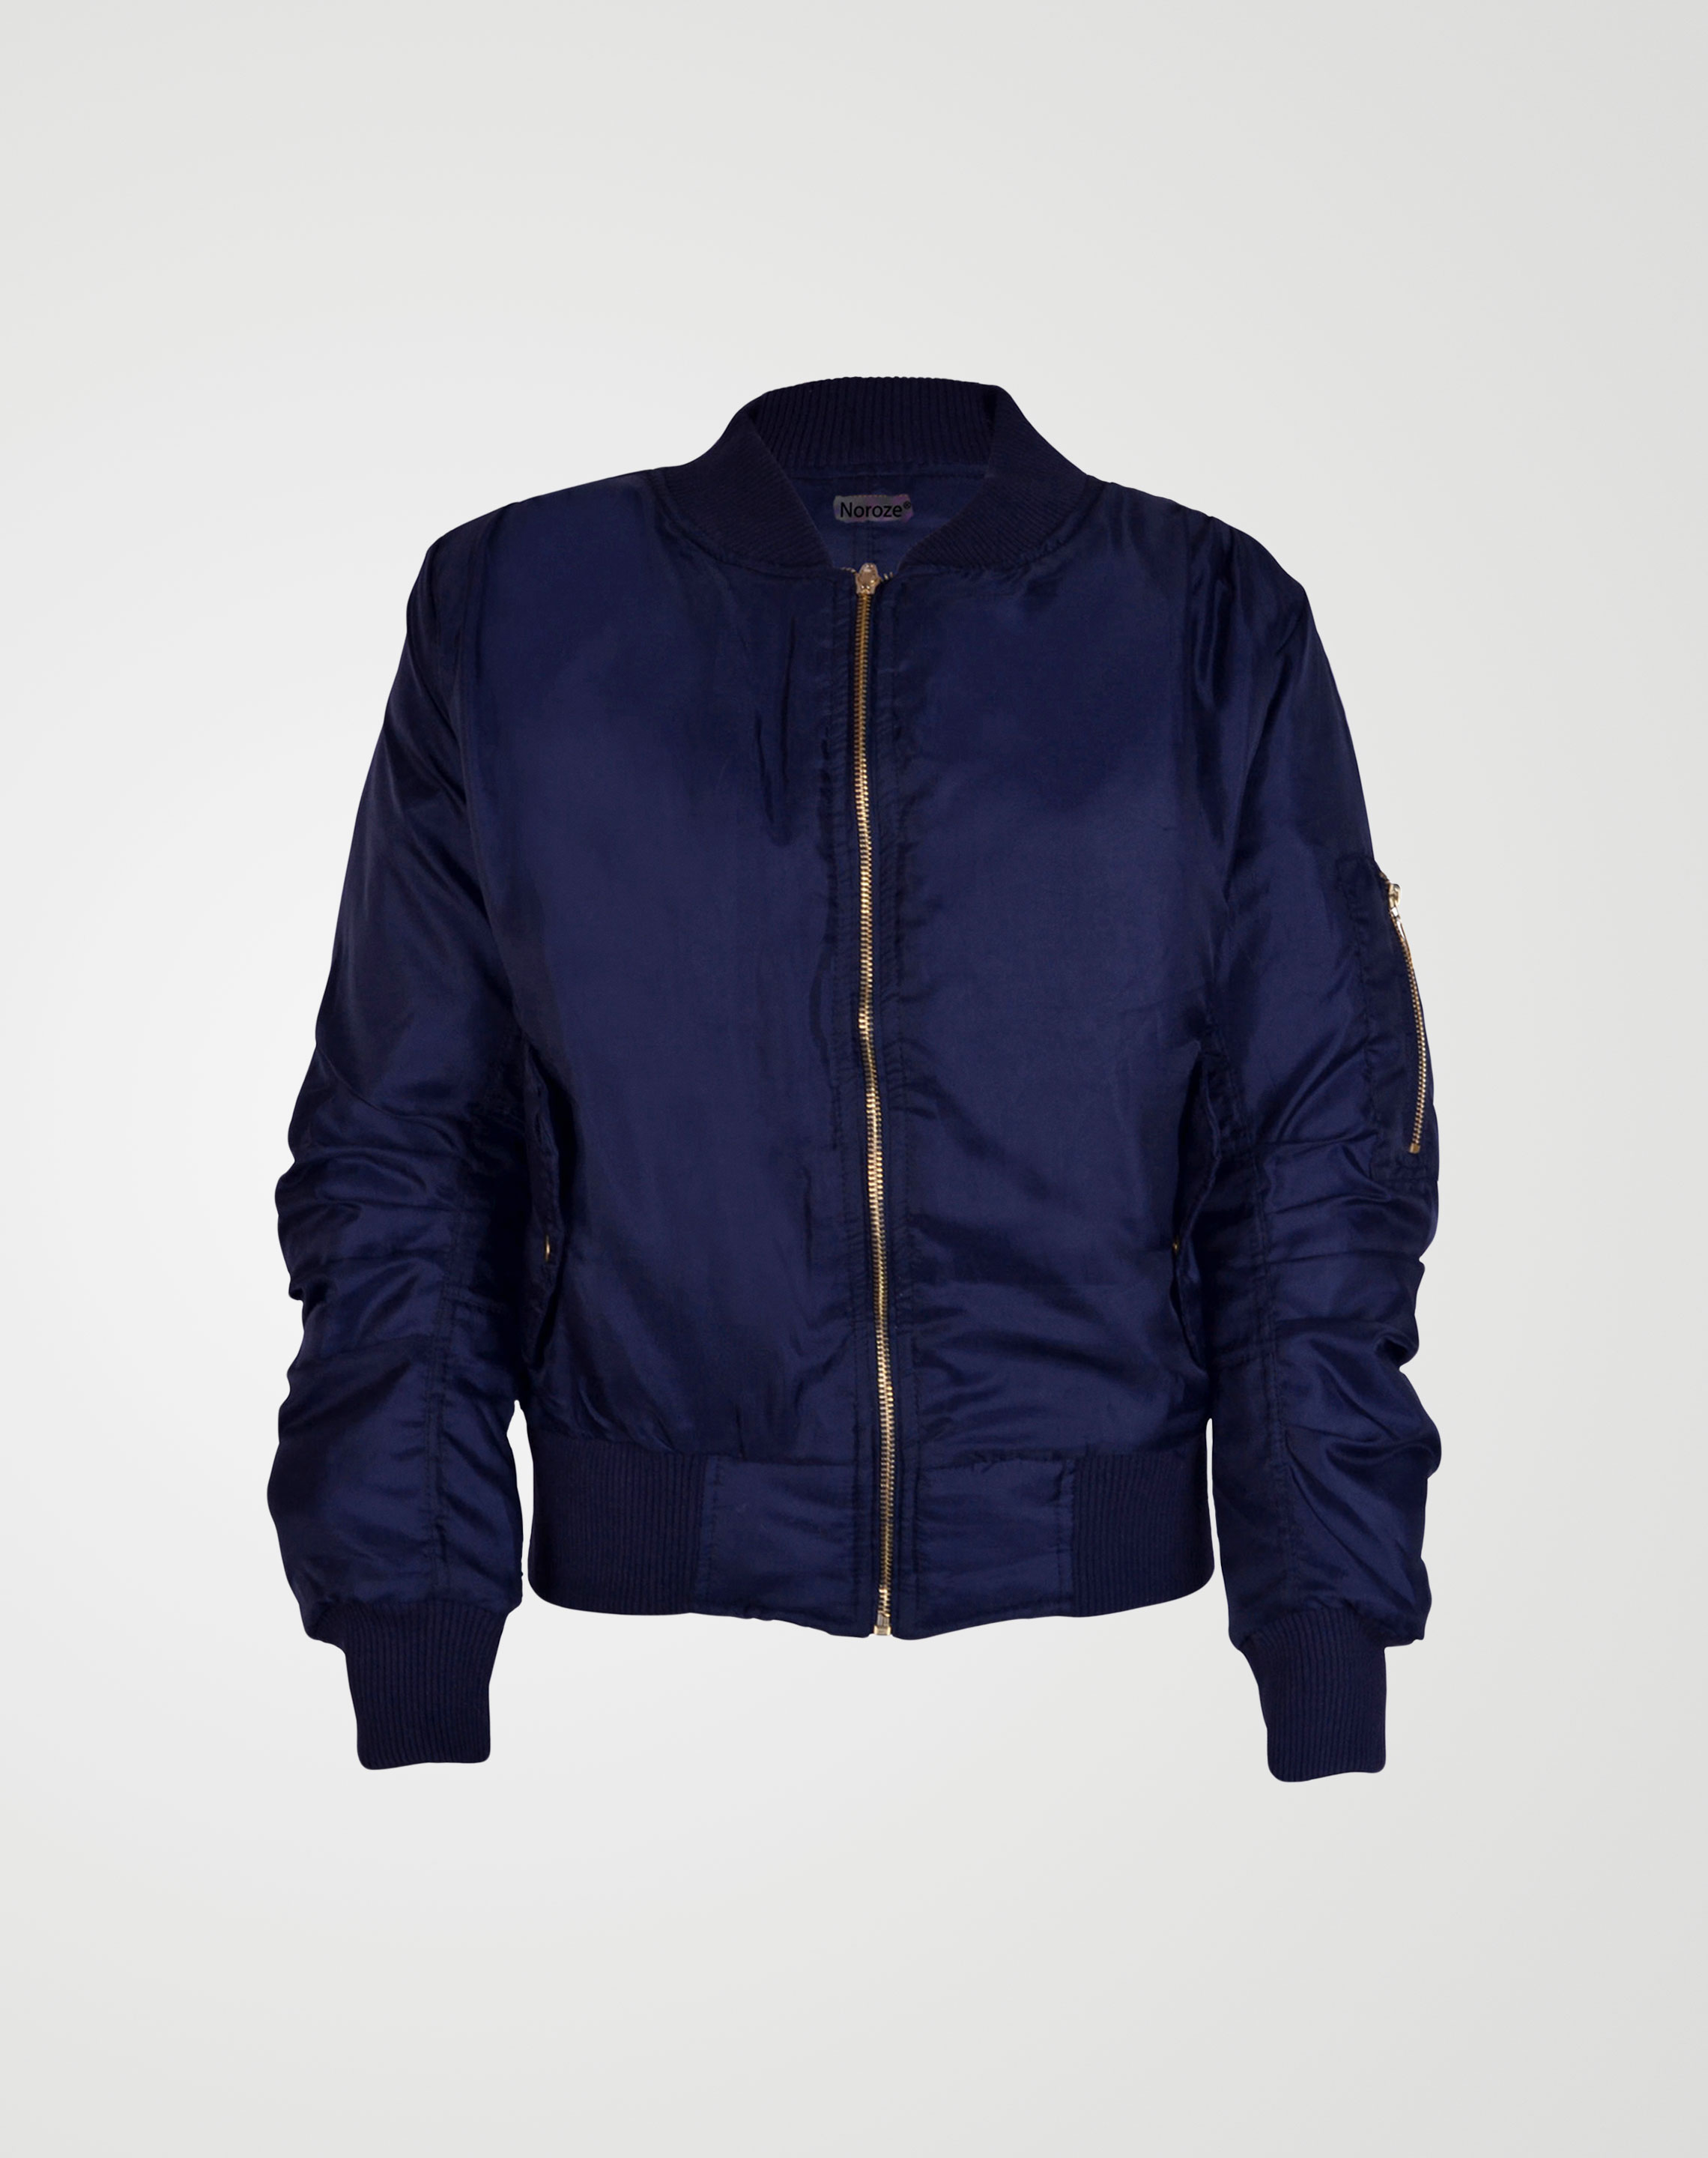 Image 1 of Girls Biker Bomber Jacket color Navy and sizes 7-8, 9-10, 11-12, 13 from Noroze